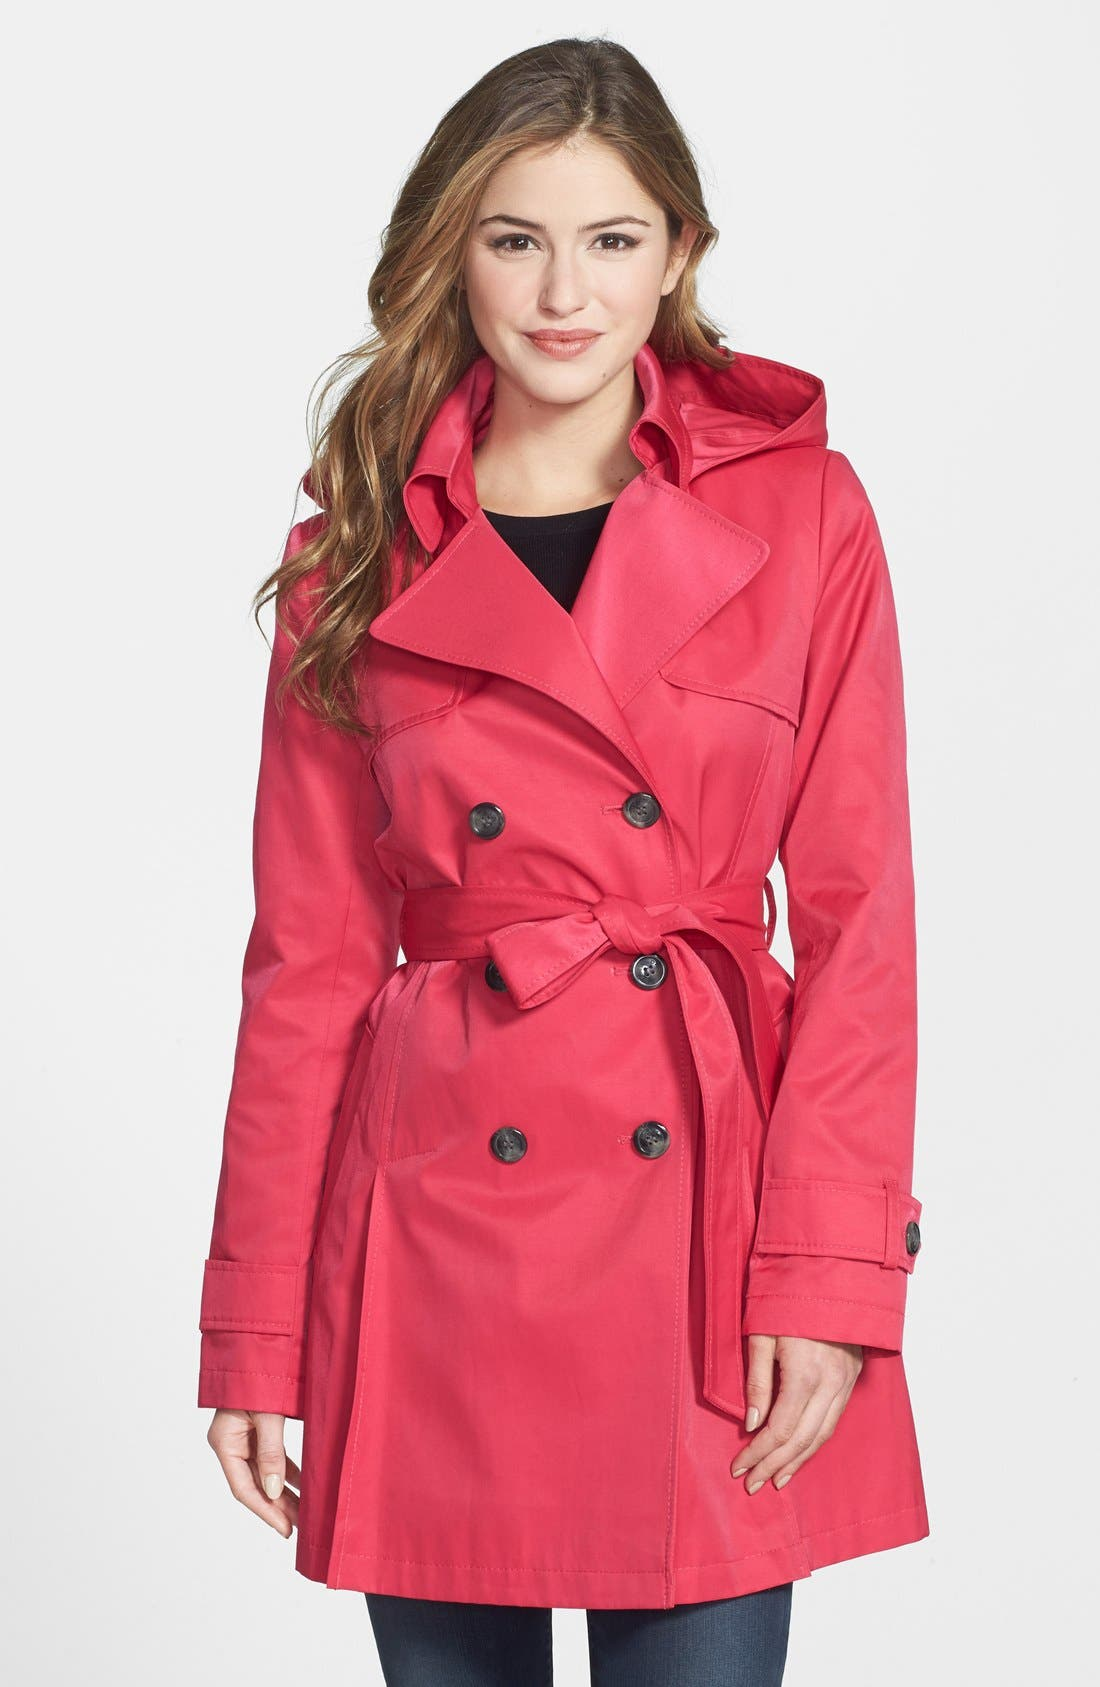 Alternate Image 1 Selected - DKNY 'Abby' Double Breasted Trench Coat with Detachable Hood (Regular & Petite)